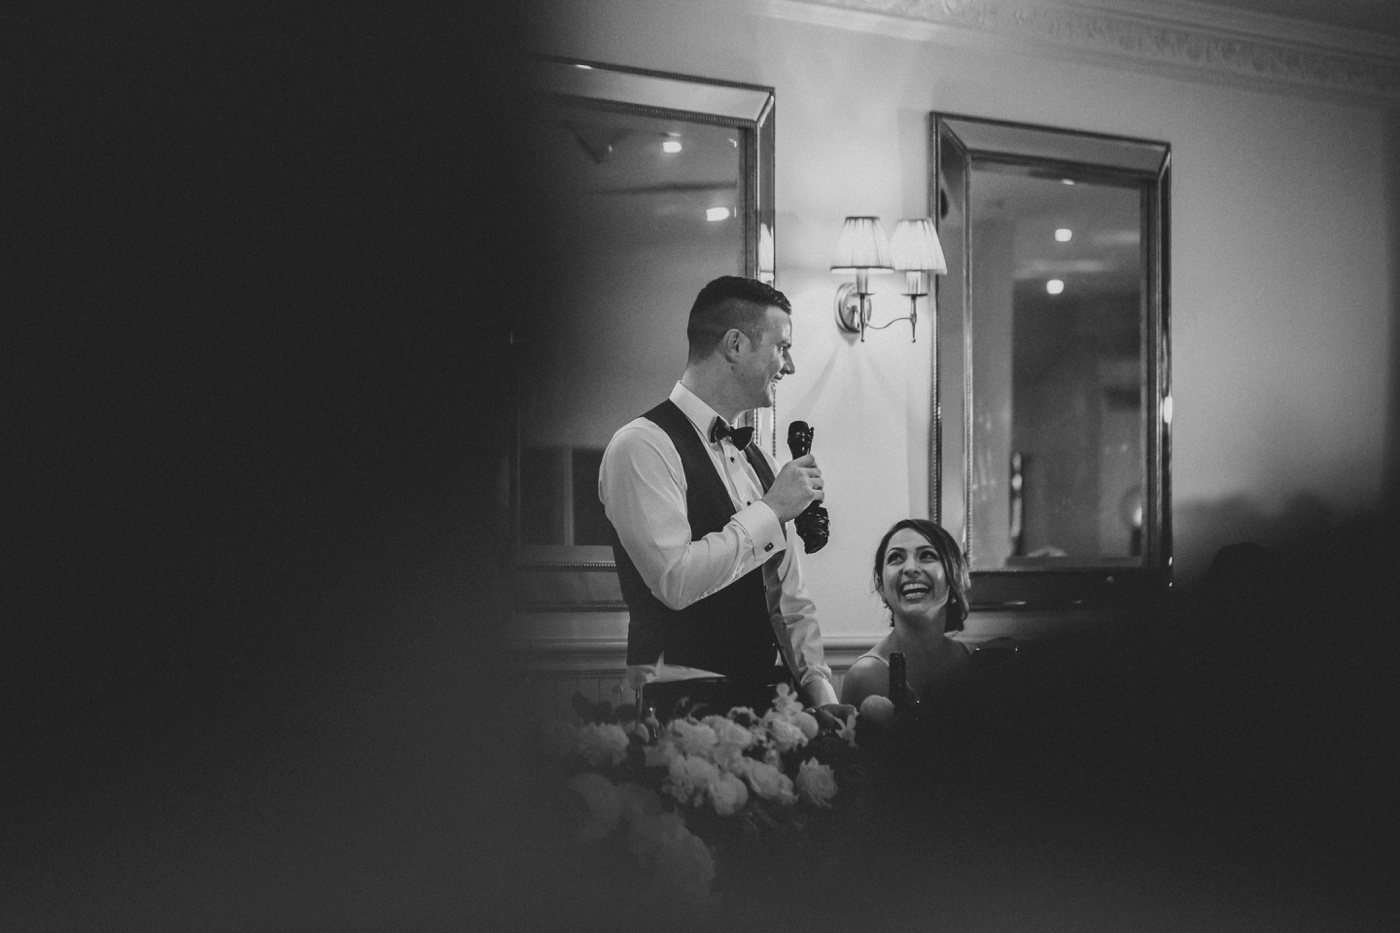 wesleybianca_dandenongs-sherbrooke-poets-lane-wedding_melbourne-quirky-fun-candid-wedding-photography_84